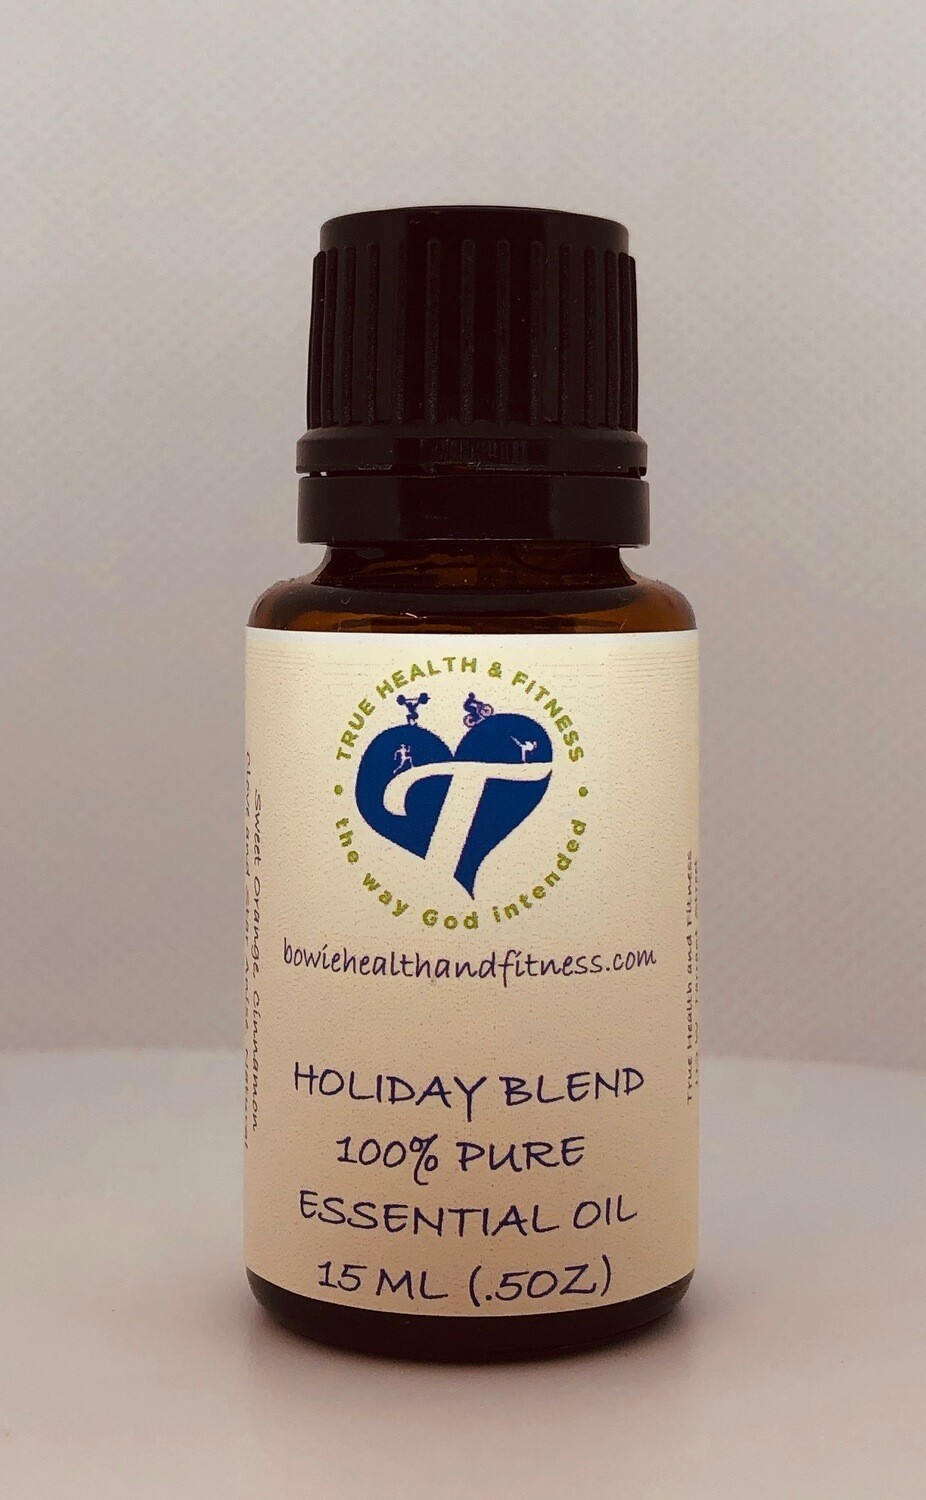 Holiday Blend of 100% Pure Essential Oils